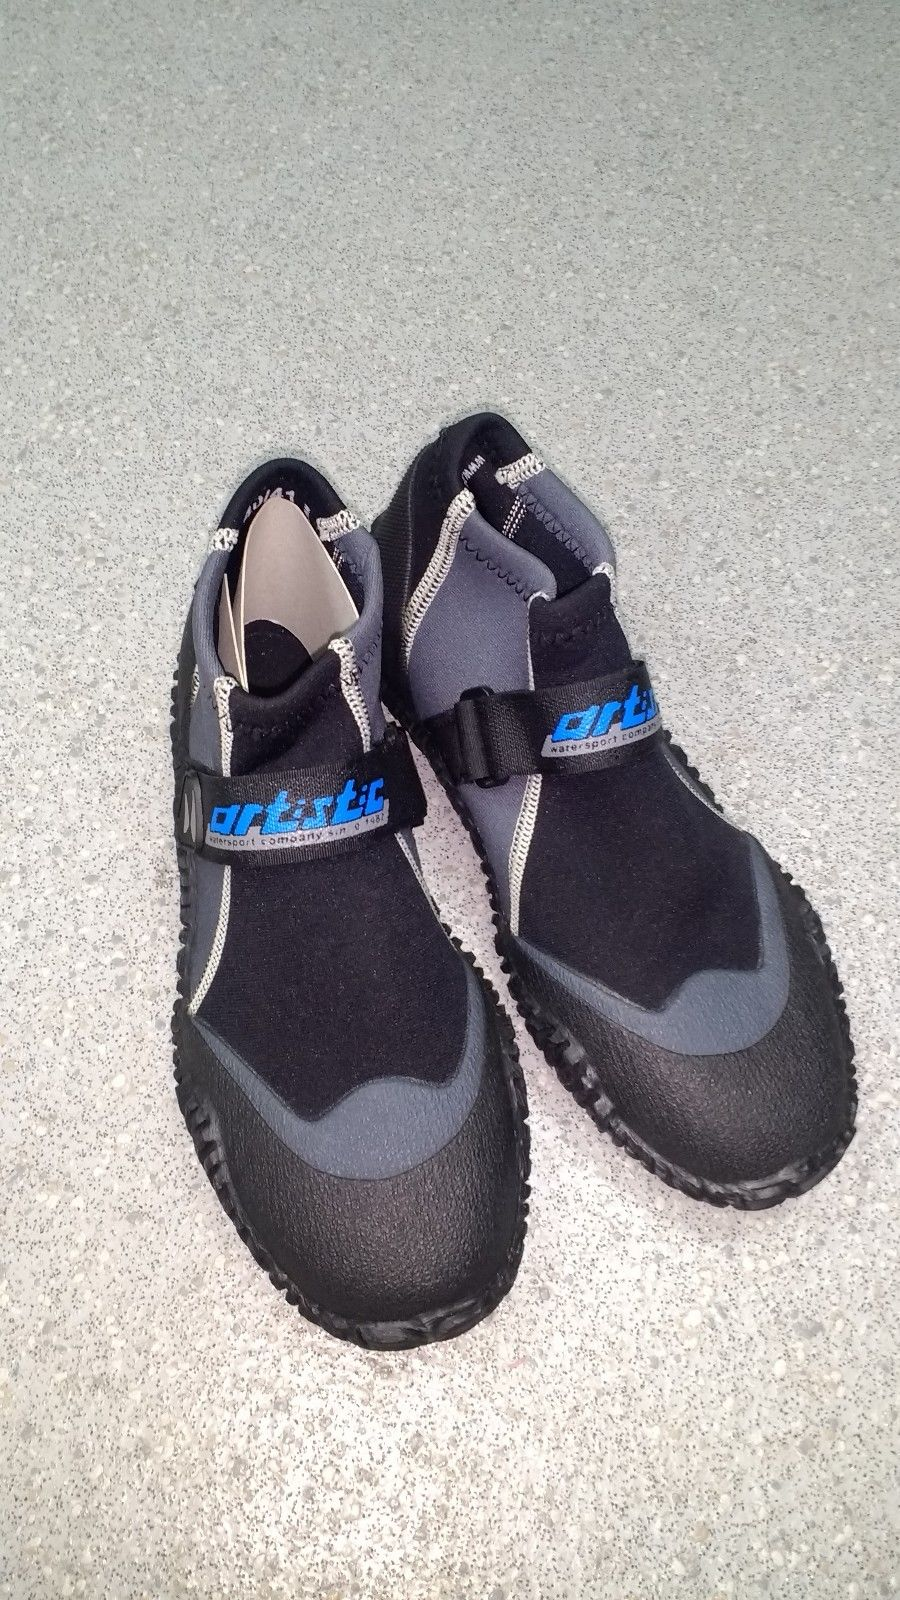 Neoprene boots Low Top (Slipper) Size 40/41